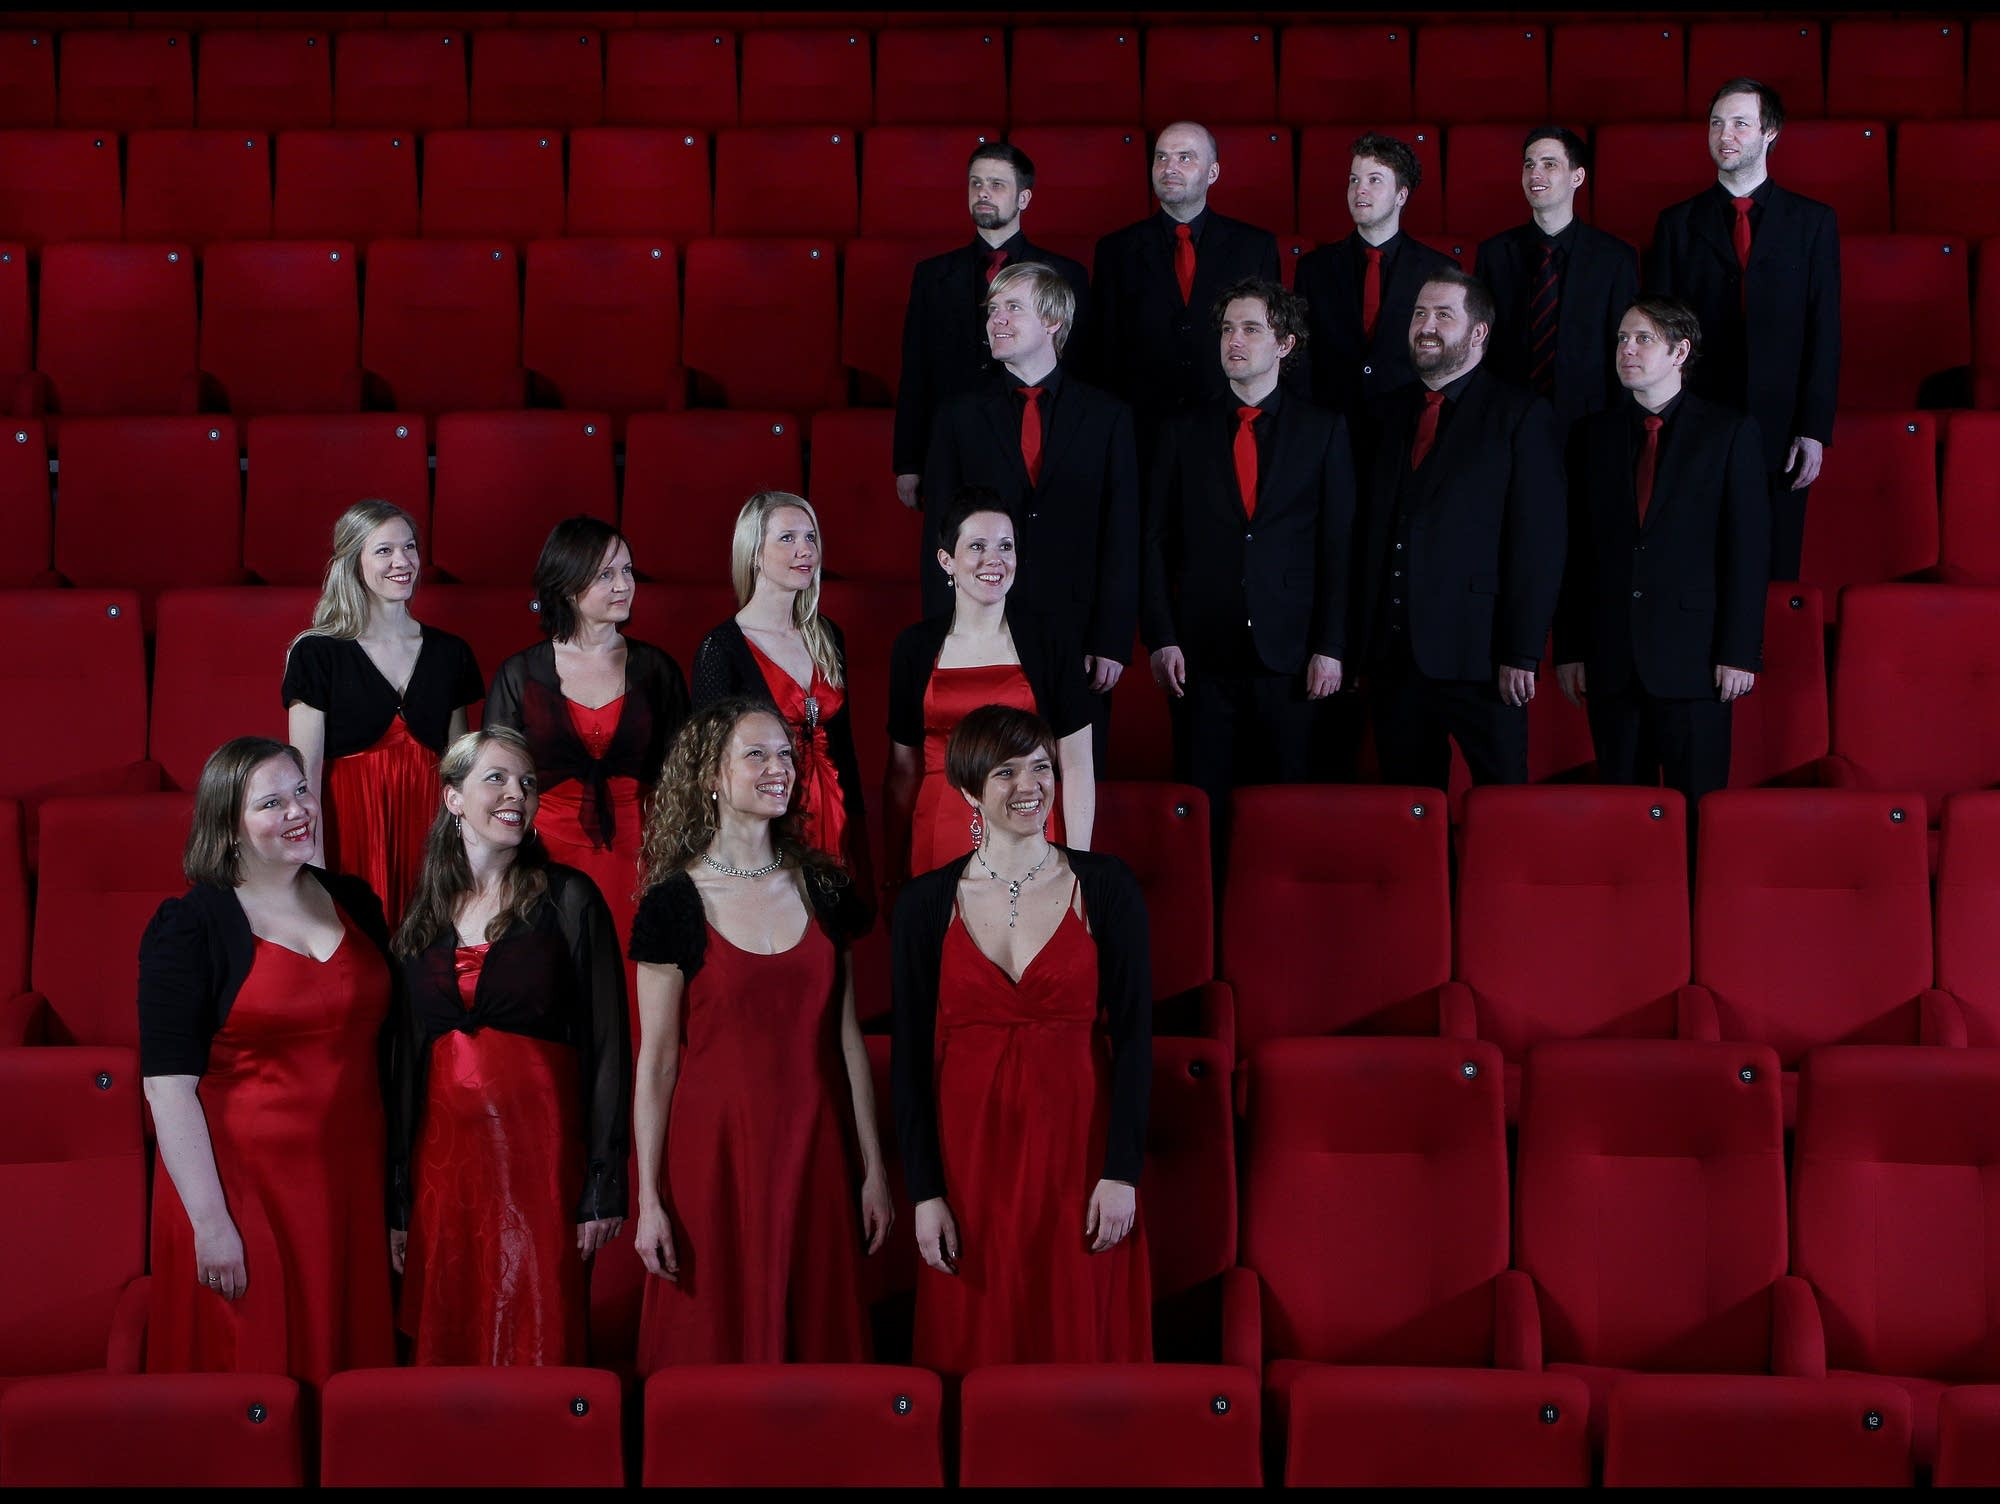 Norwegian Soloists' Choir